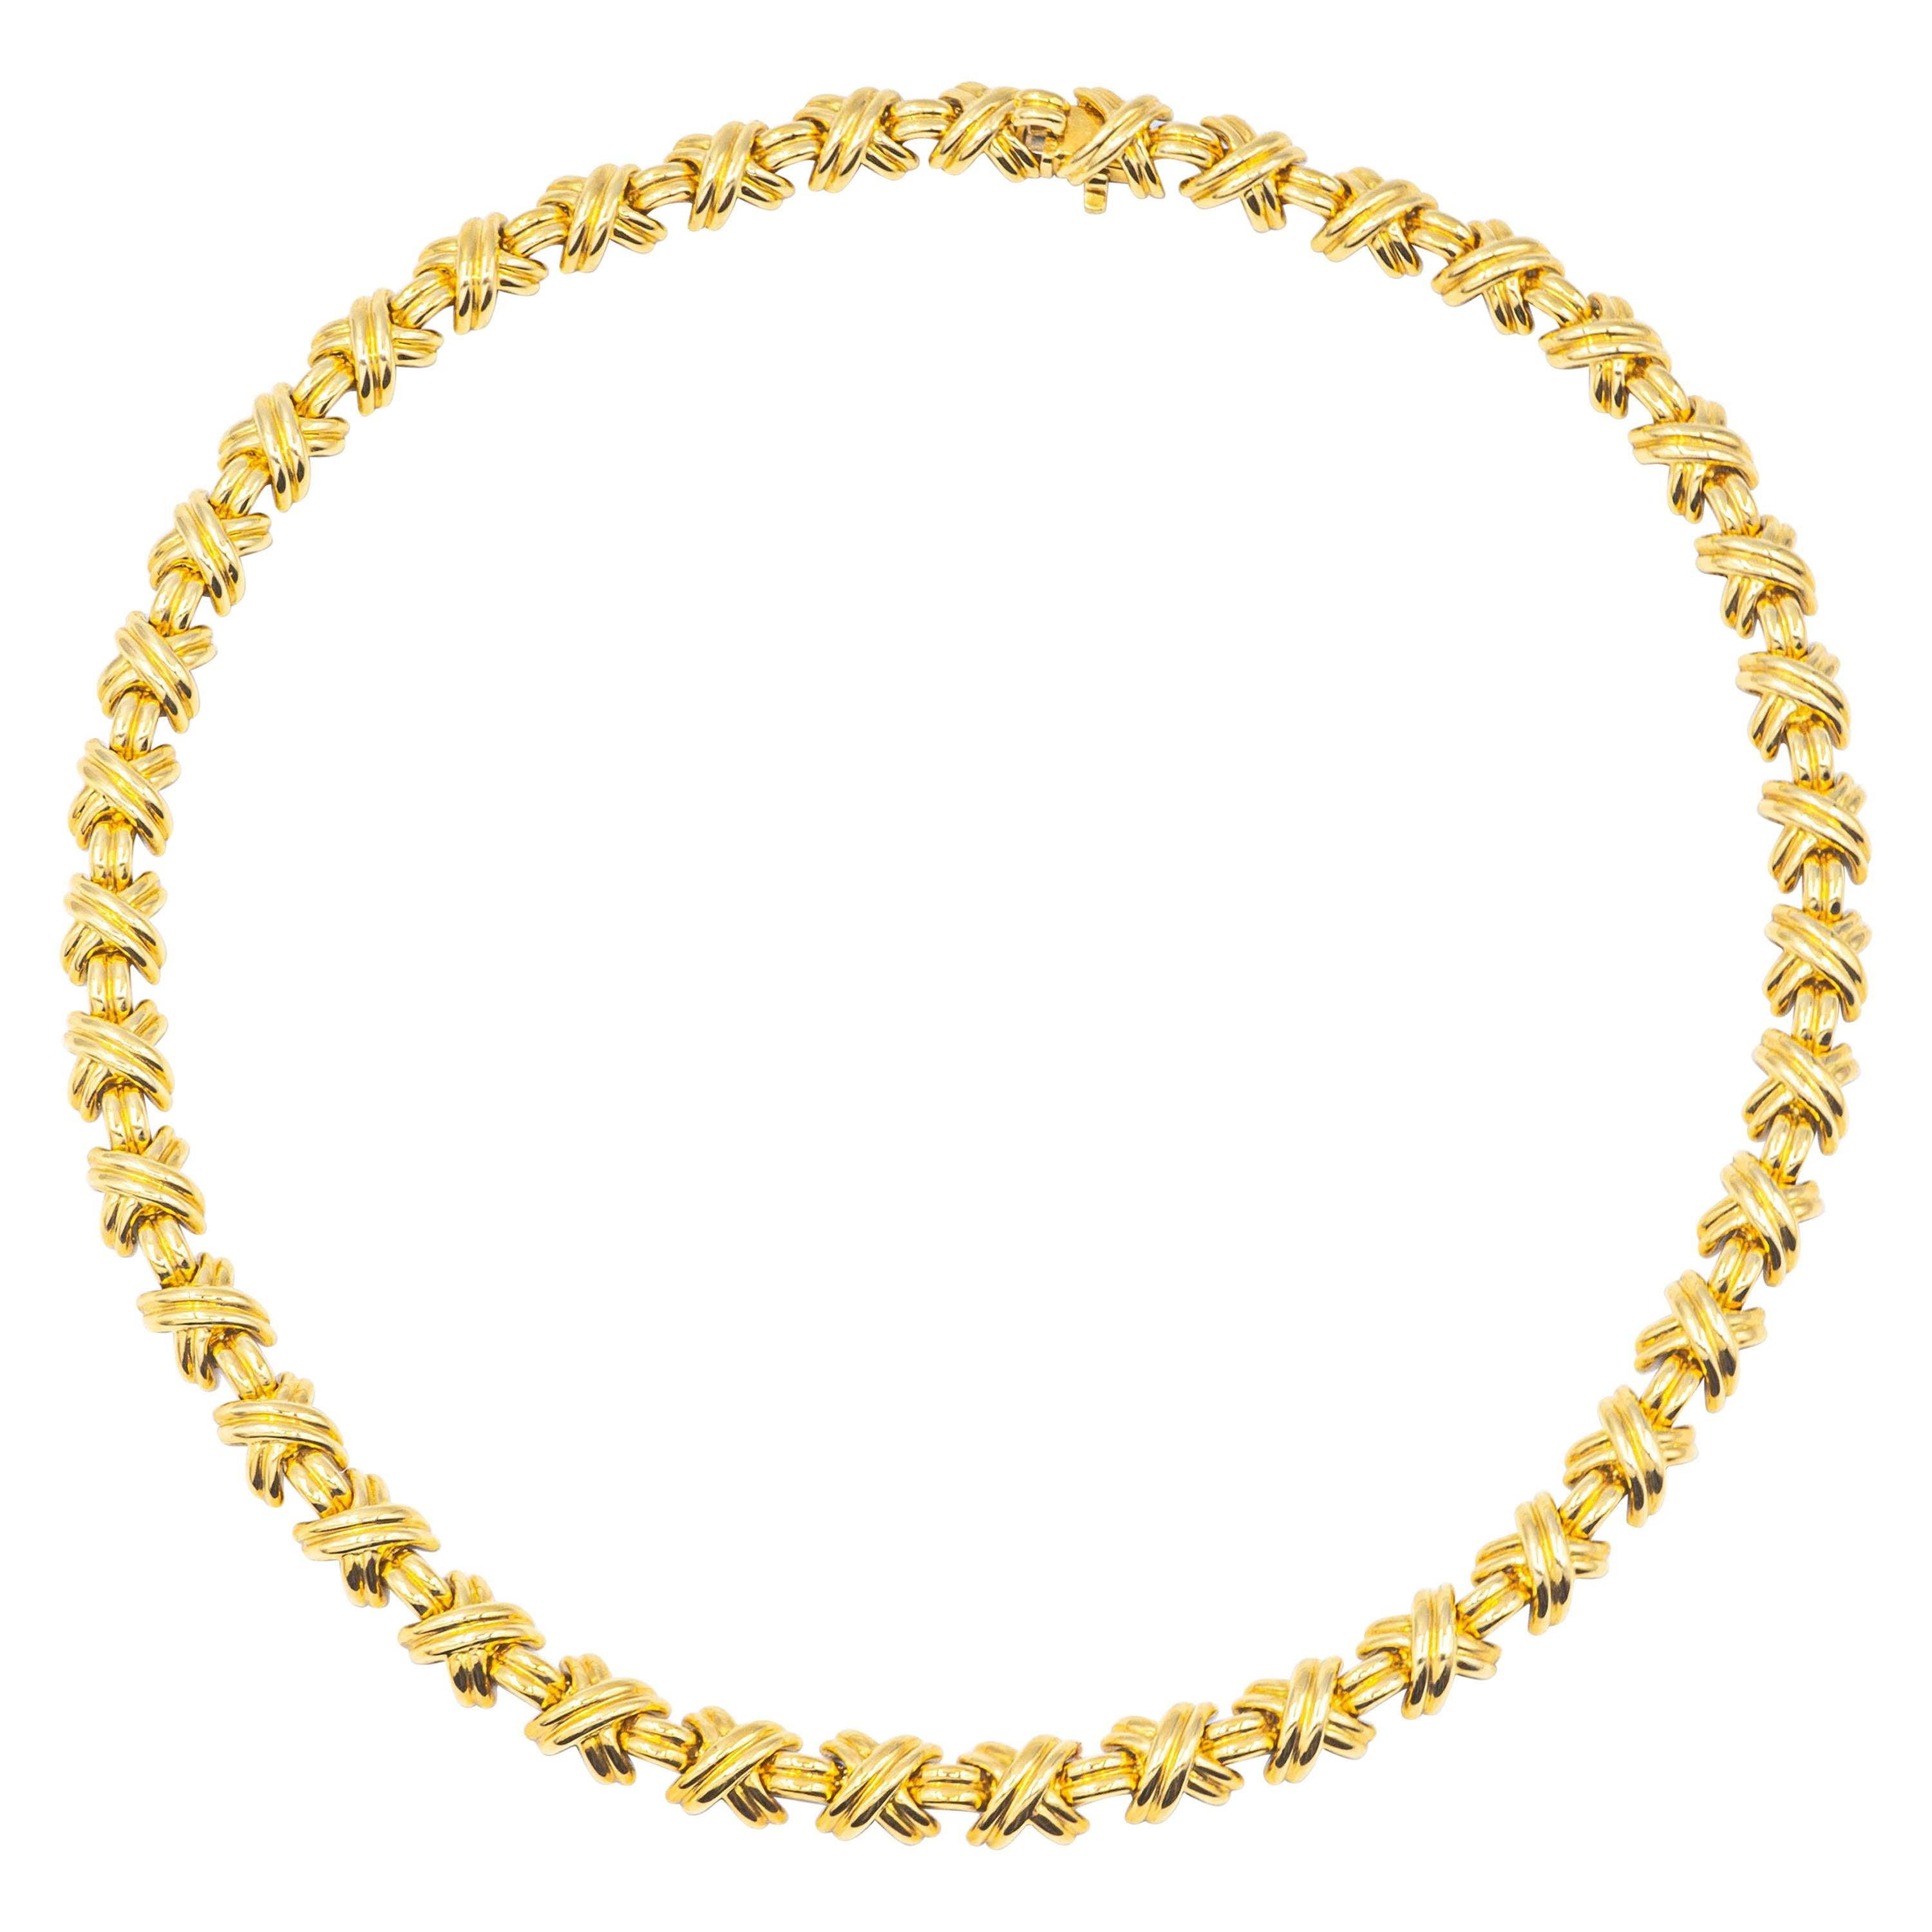 Tiffany & Co. X Signature Collection Choker Necklace 18k Yellow Gold